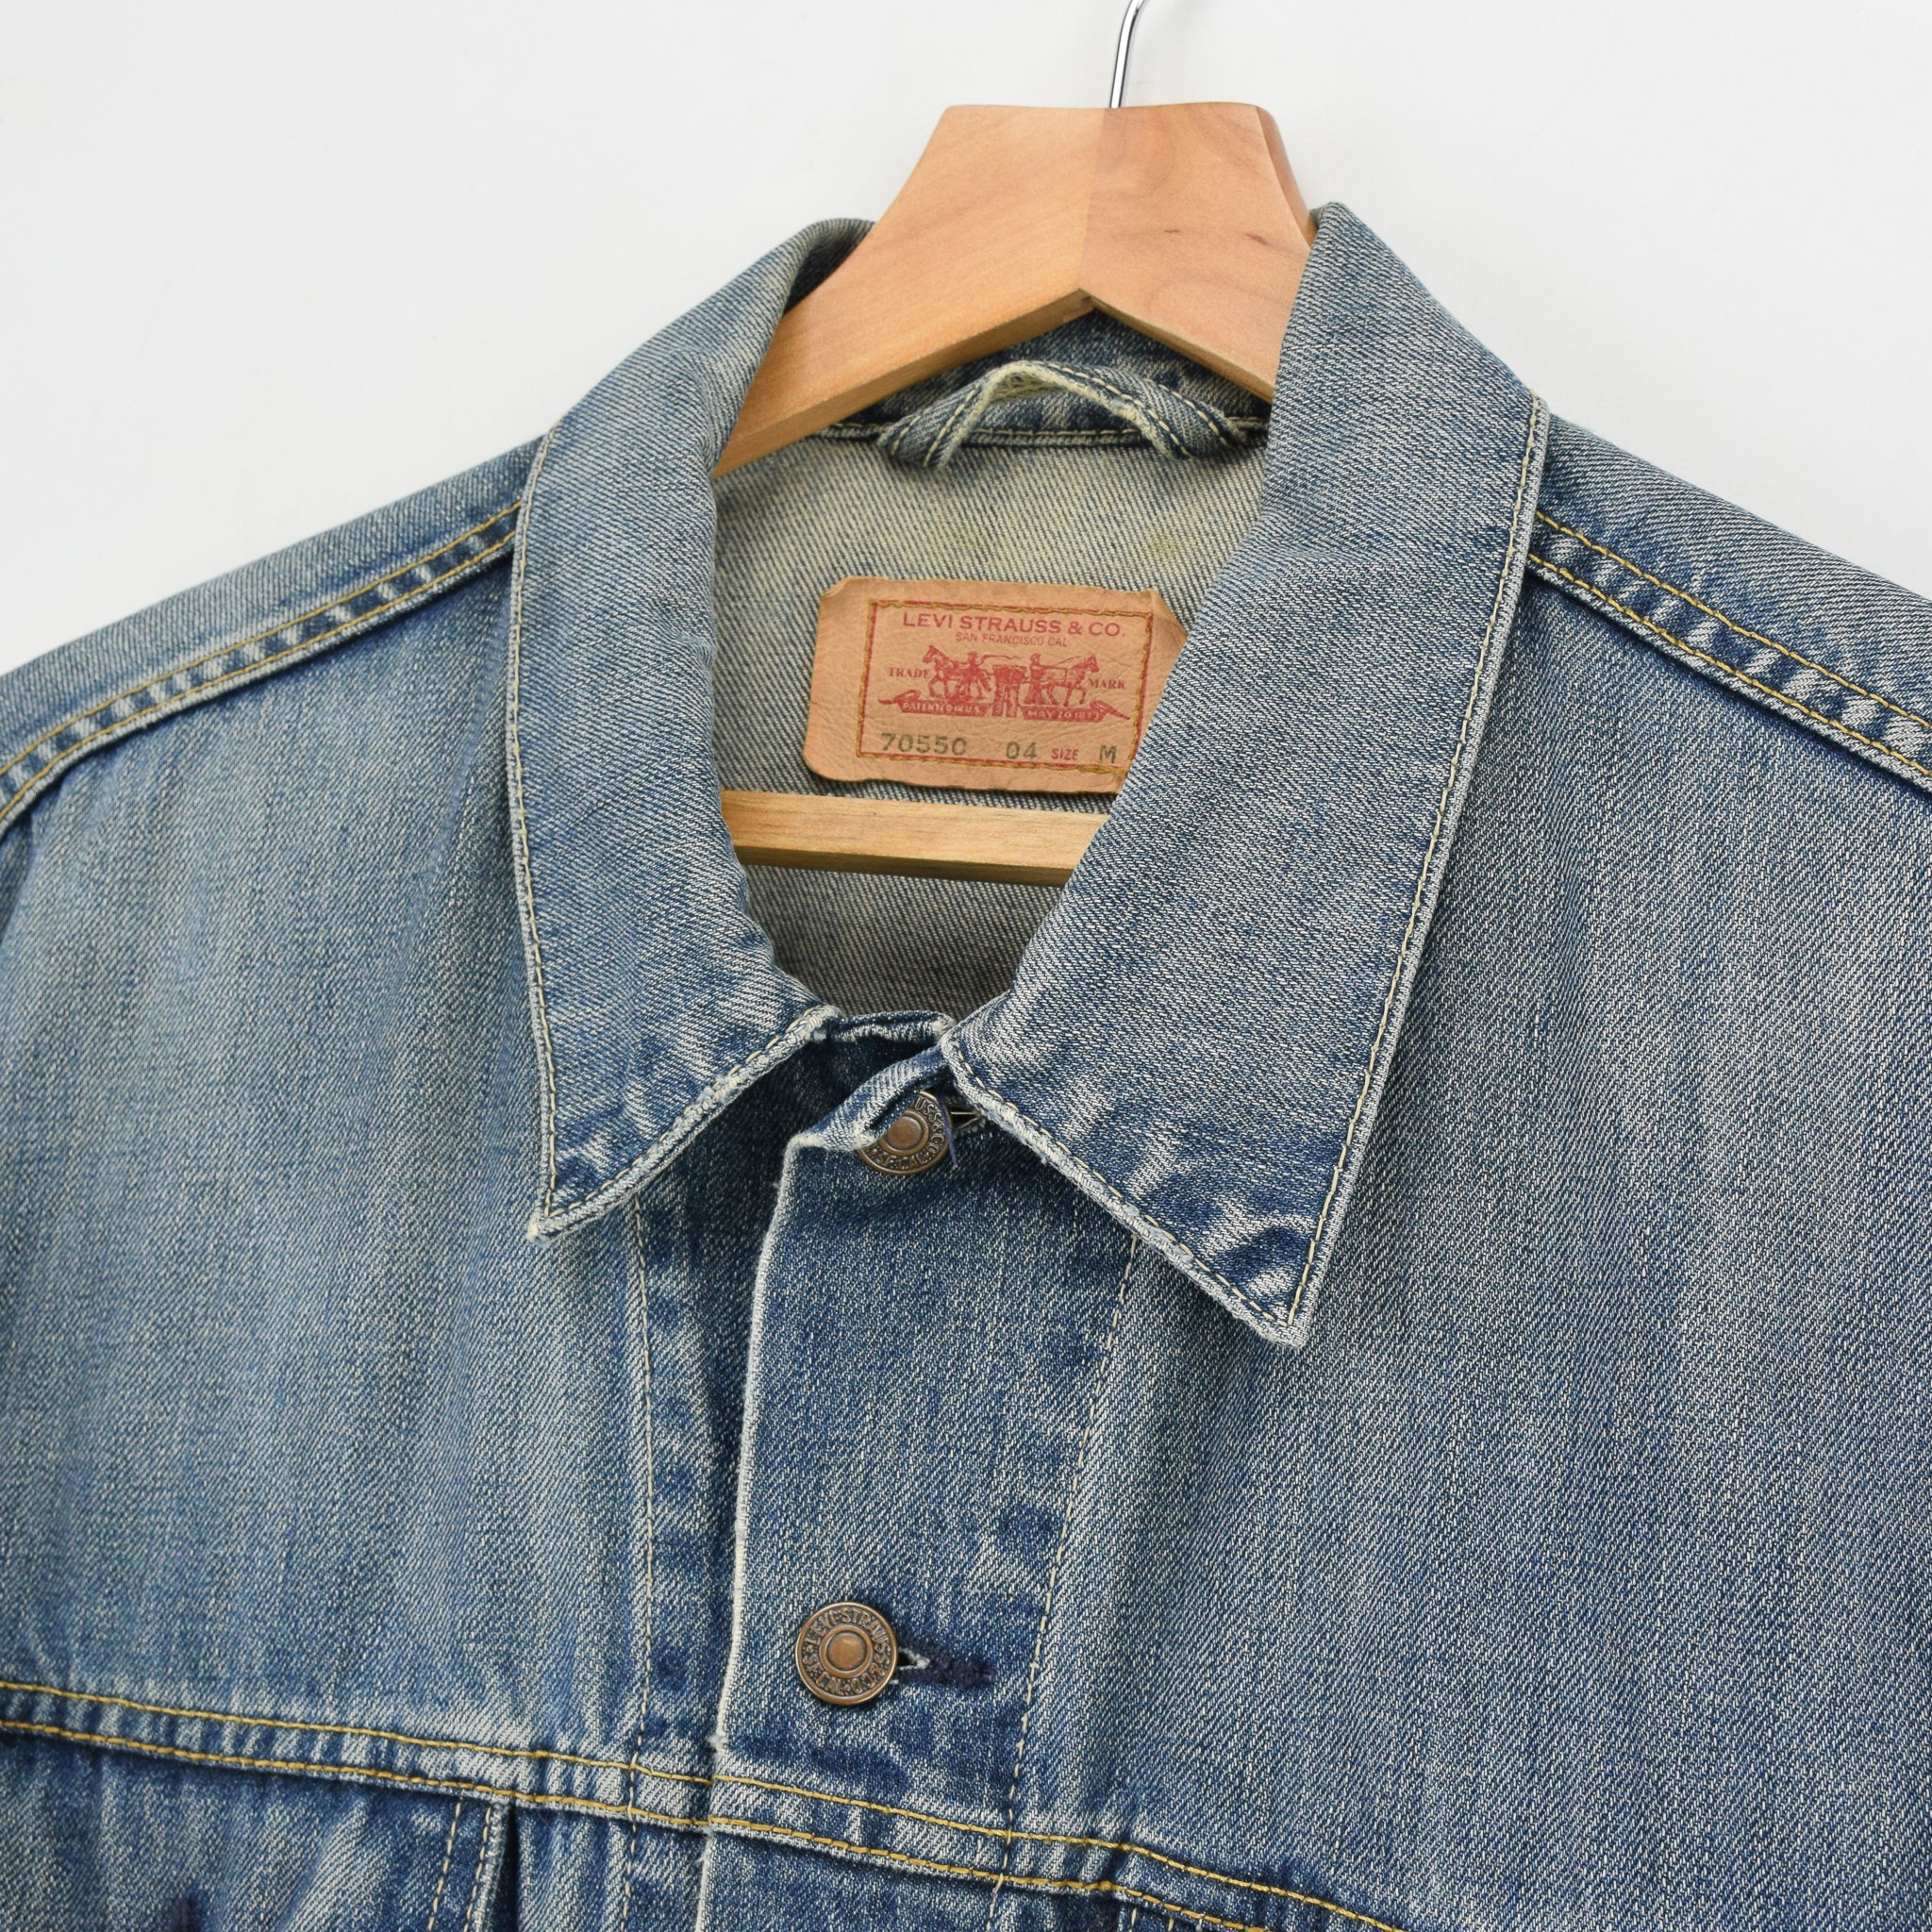 Vintage Levi 70550 Stonewash Blue Denim Trucker Type 3 Jacket M collar